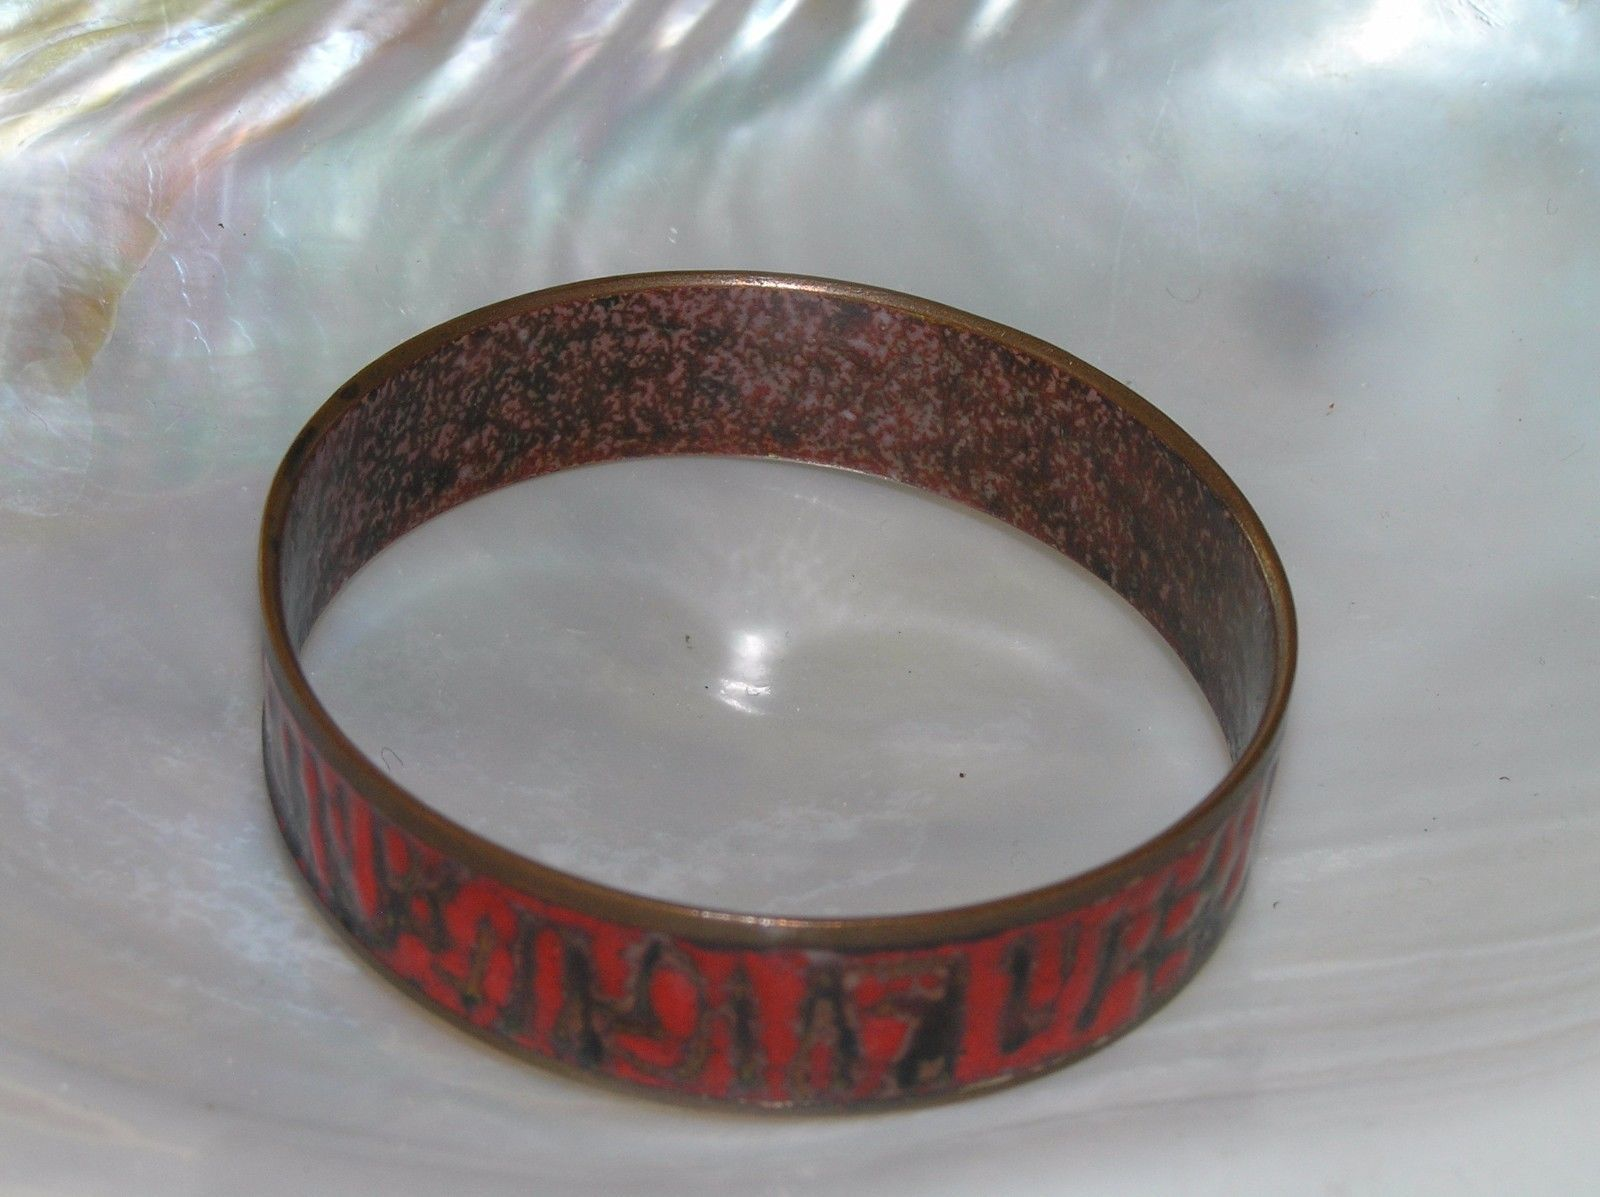 Vintage Midcentury Red Enamel Swirl MODERNIST Solid Copper Geometric Bangle Brac